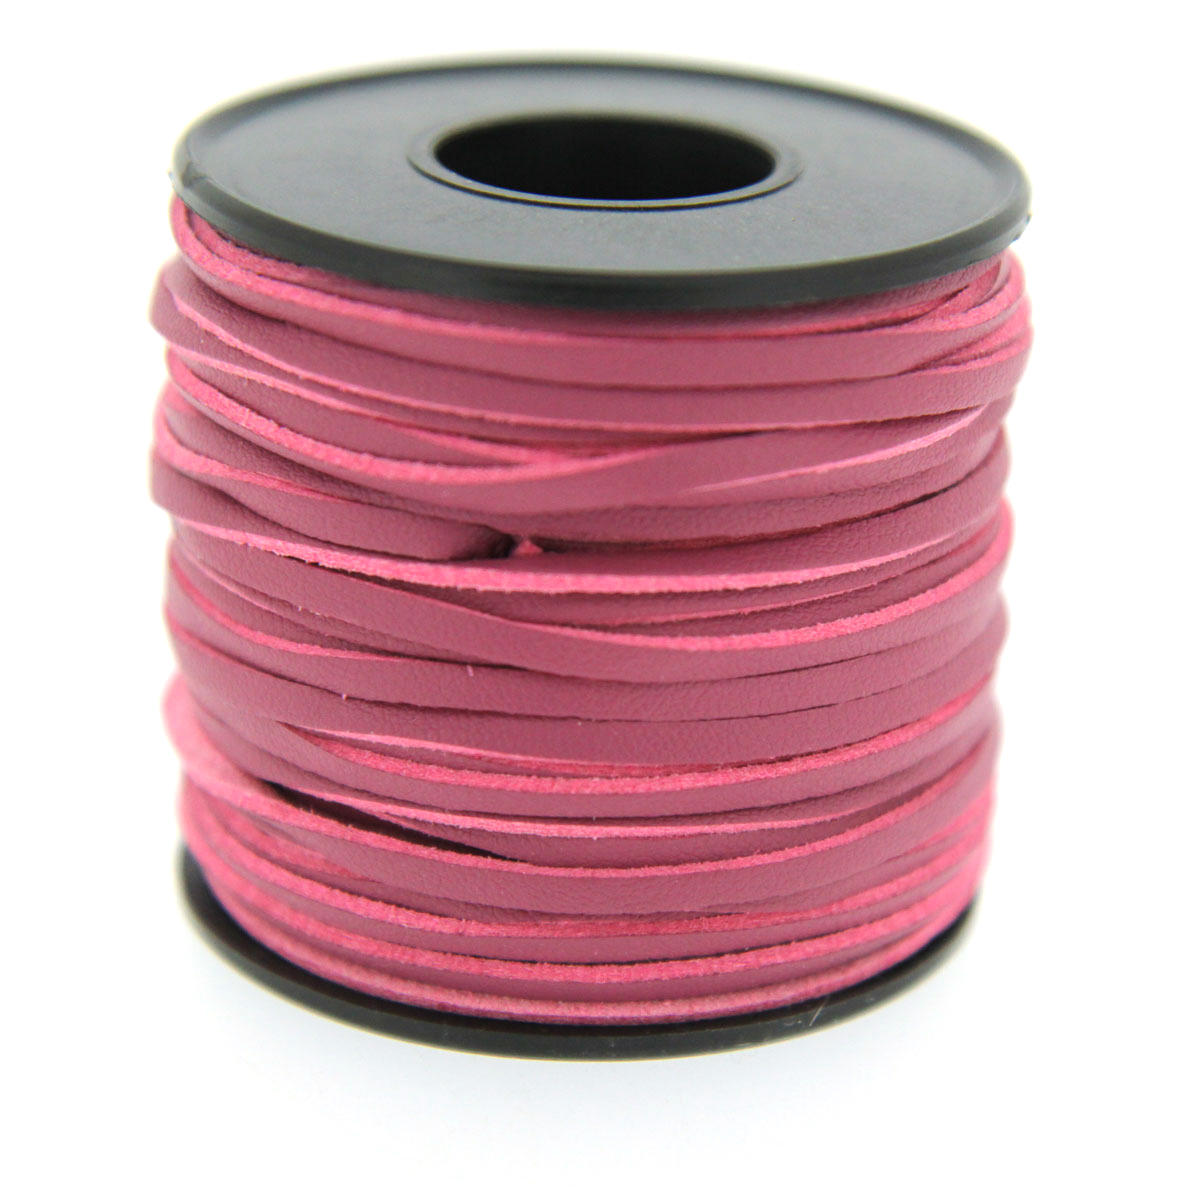 Plum/pink two tone leather faux cord 3mm